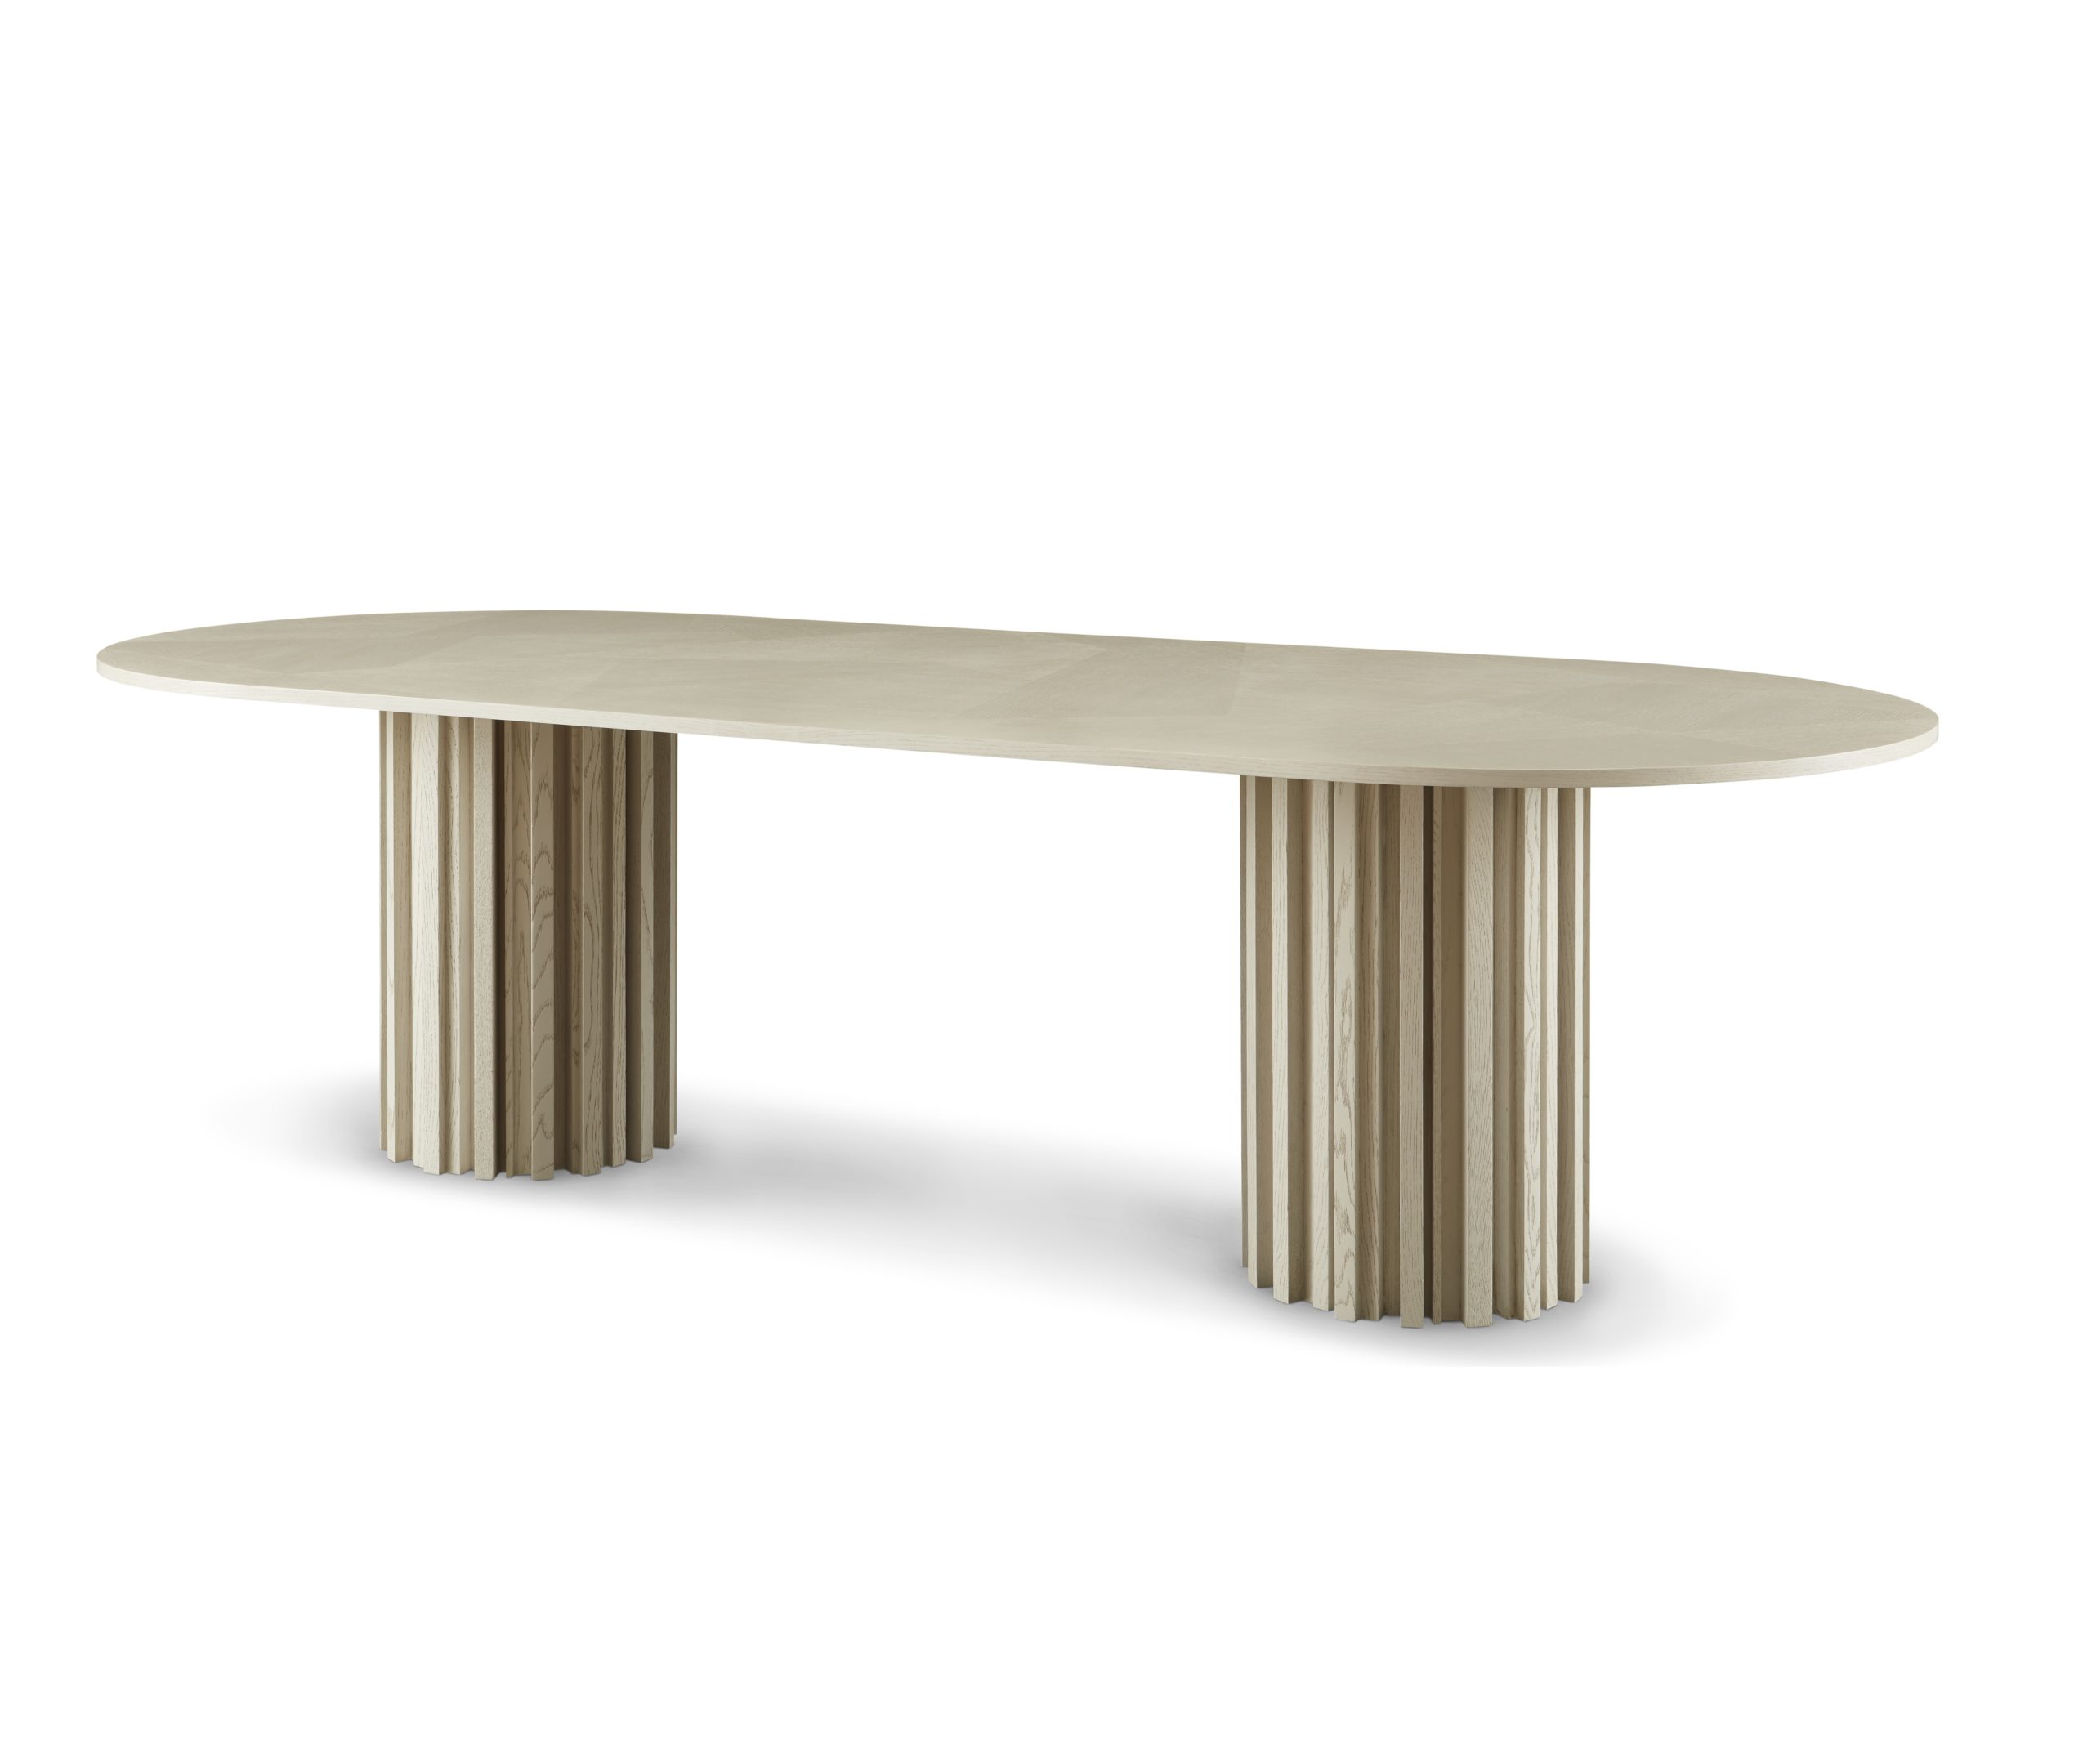 Baker_products_WNWN_huxley_dining_table_BAA3036_OVAL_FRONT_3QRT-scaled-6